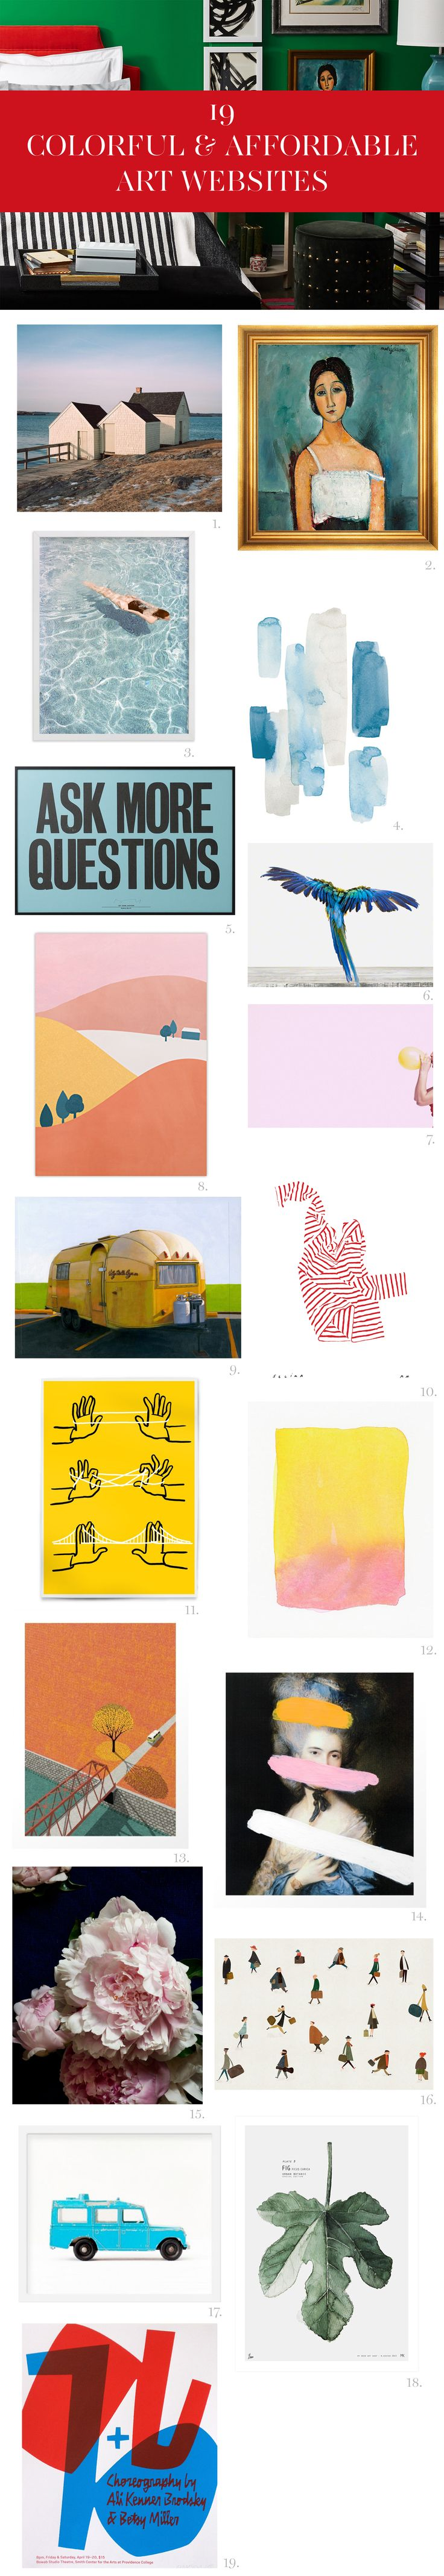 19 Colorful & Affordable Art Websites | Bright.Bazaar | Bloglovin'